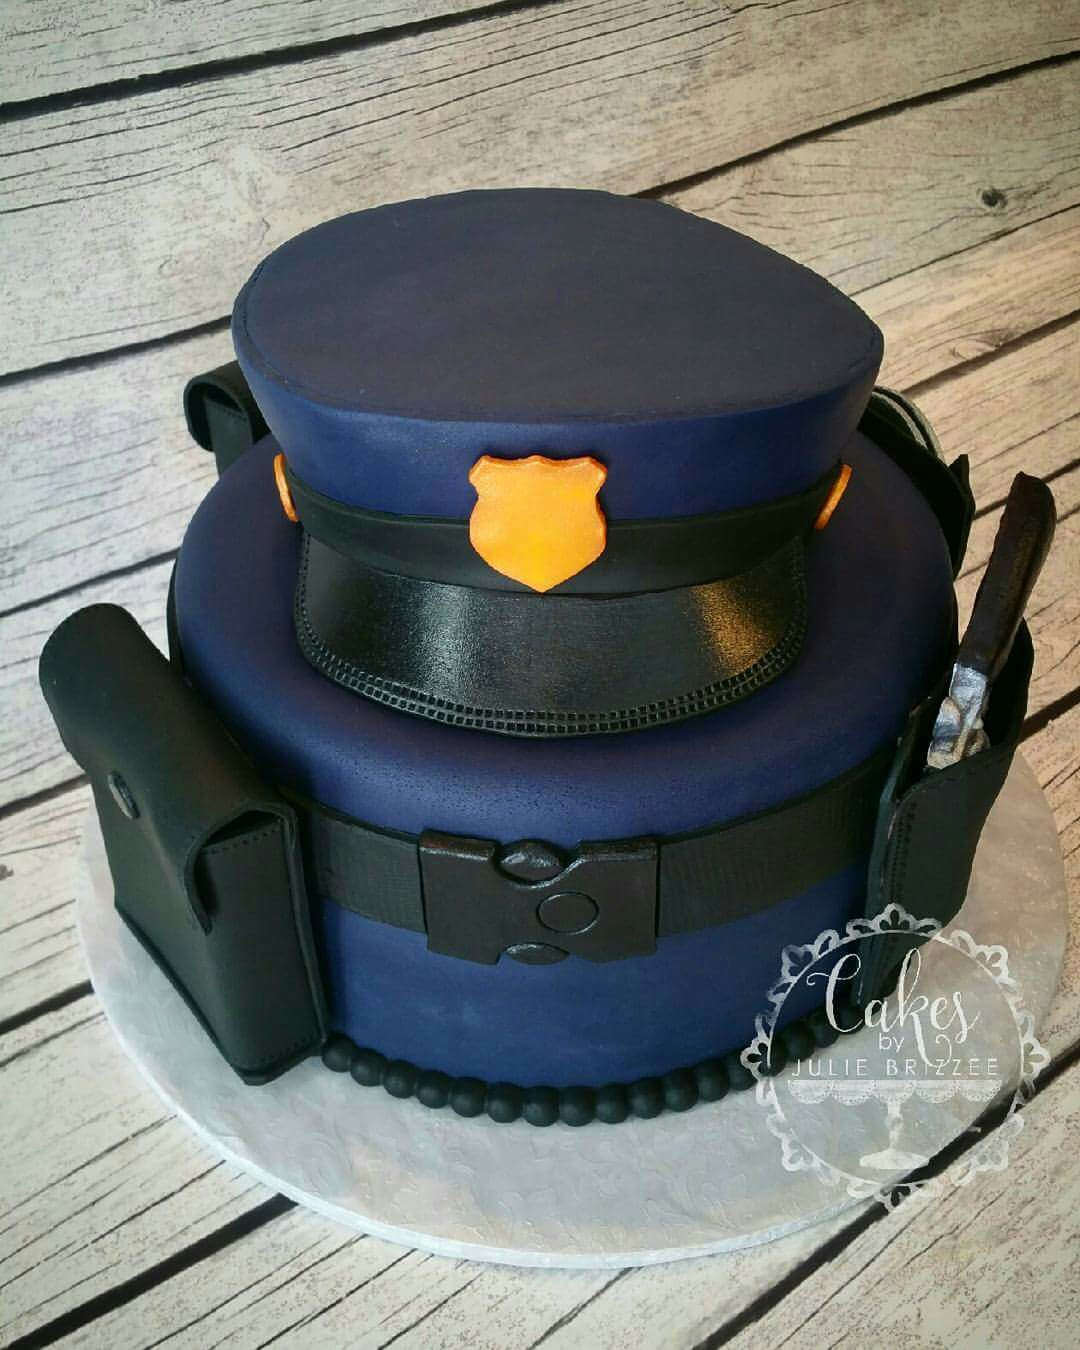 Police Officer Cake I Made That Sold At The Idaho F S